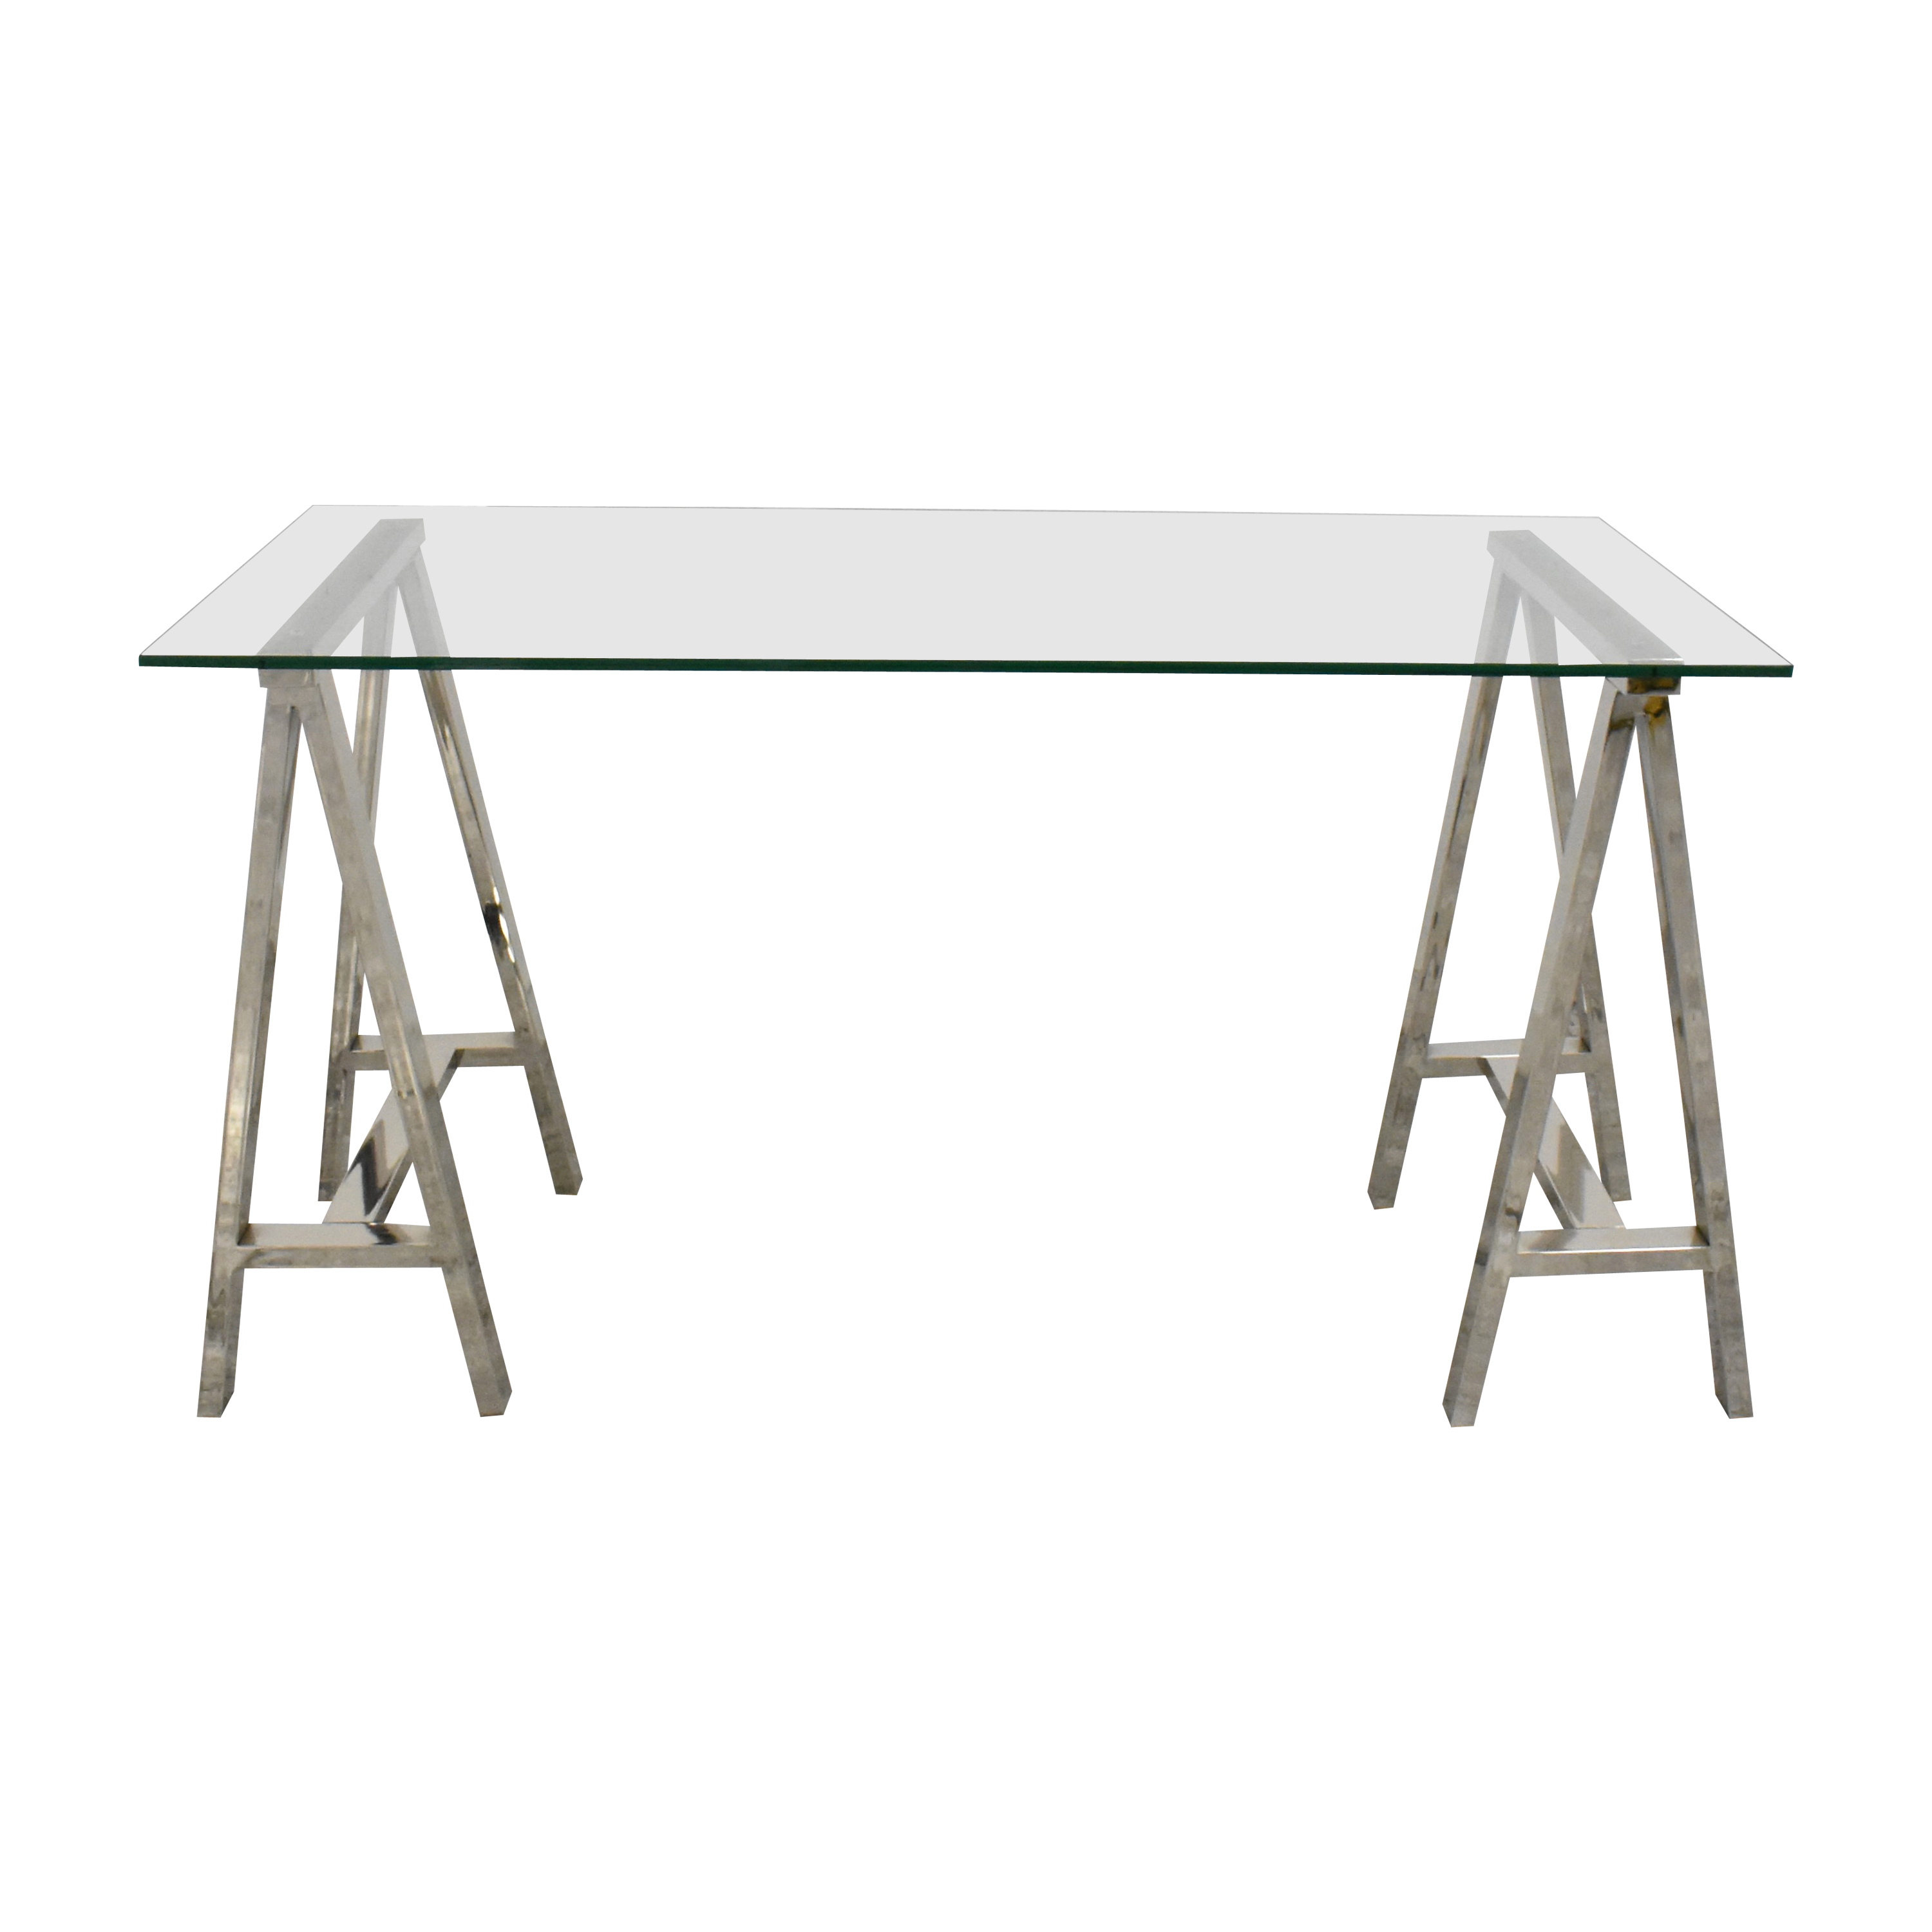 West Elm West Elm Cross Base Desk ct